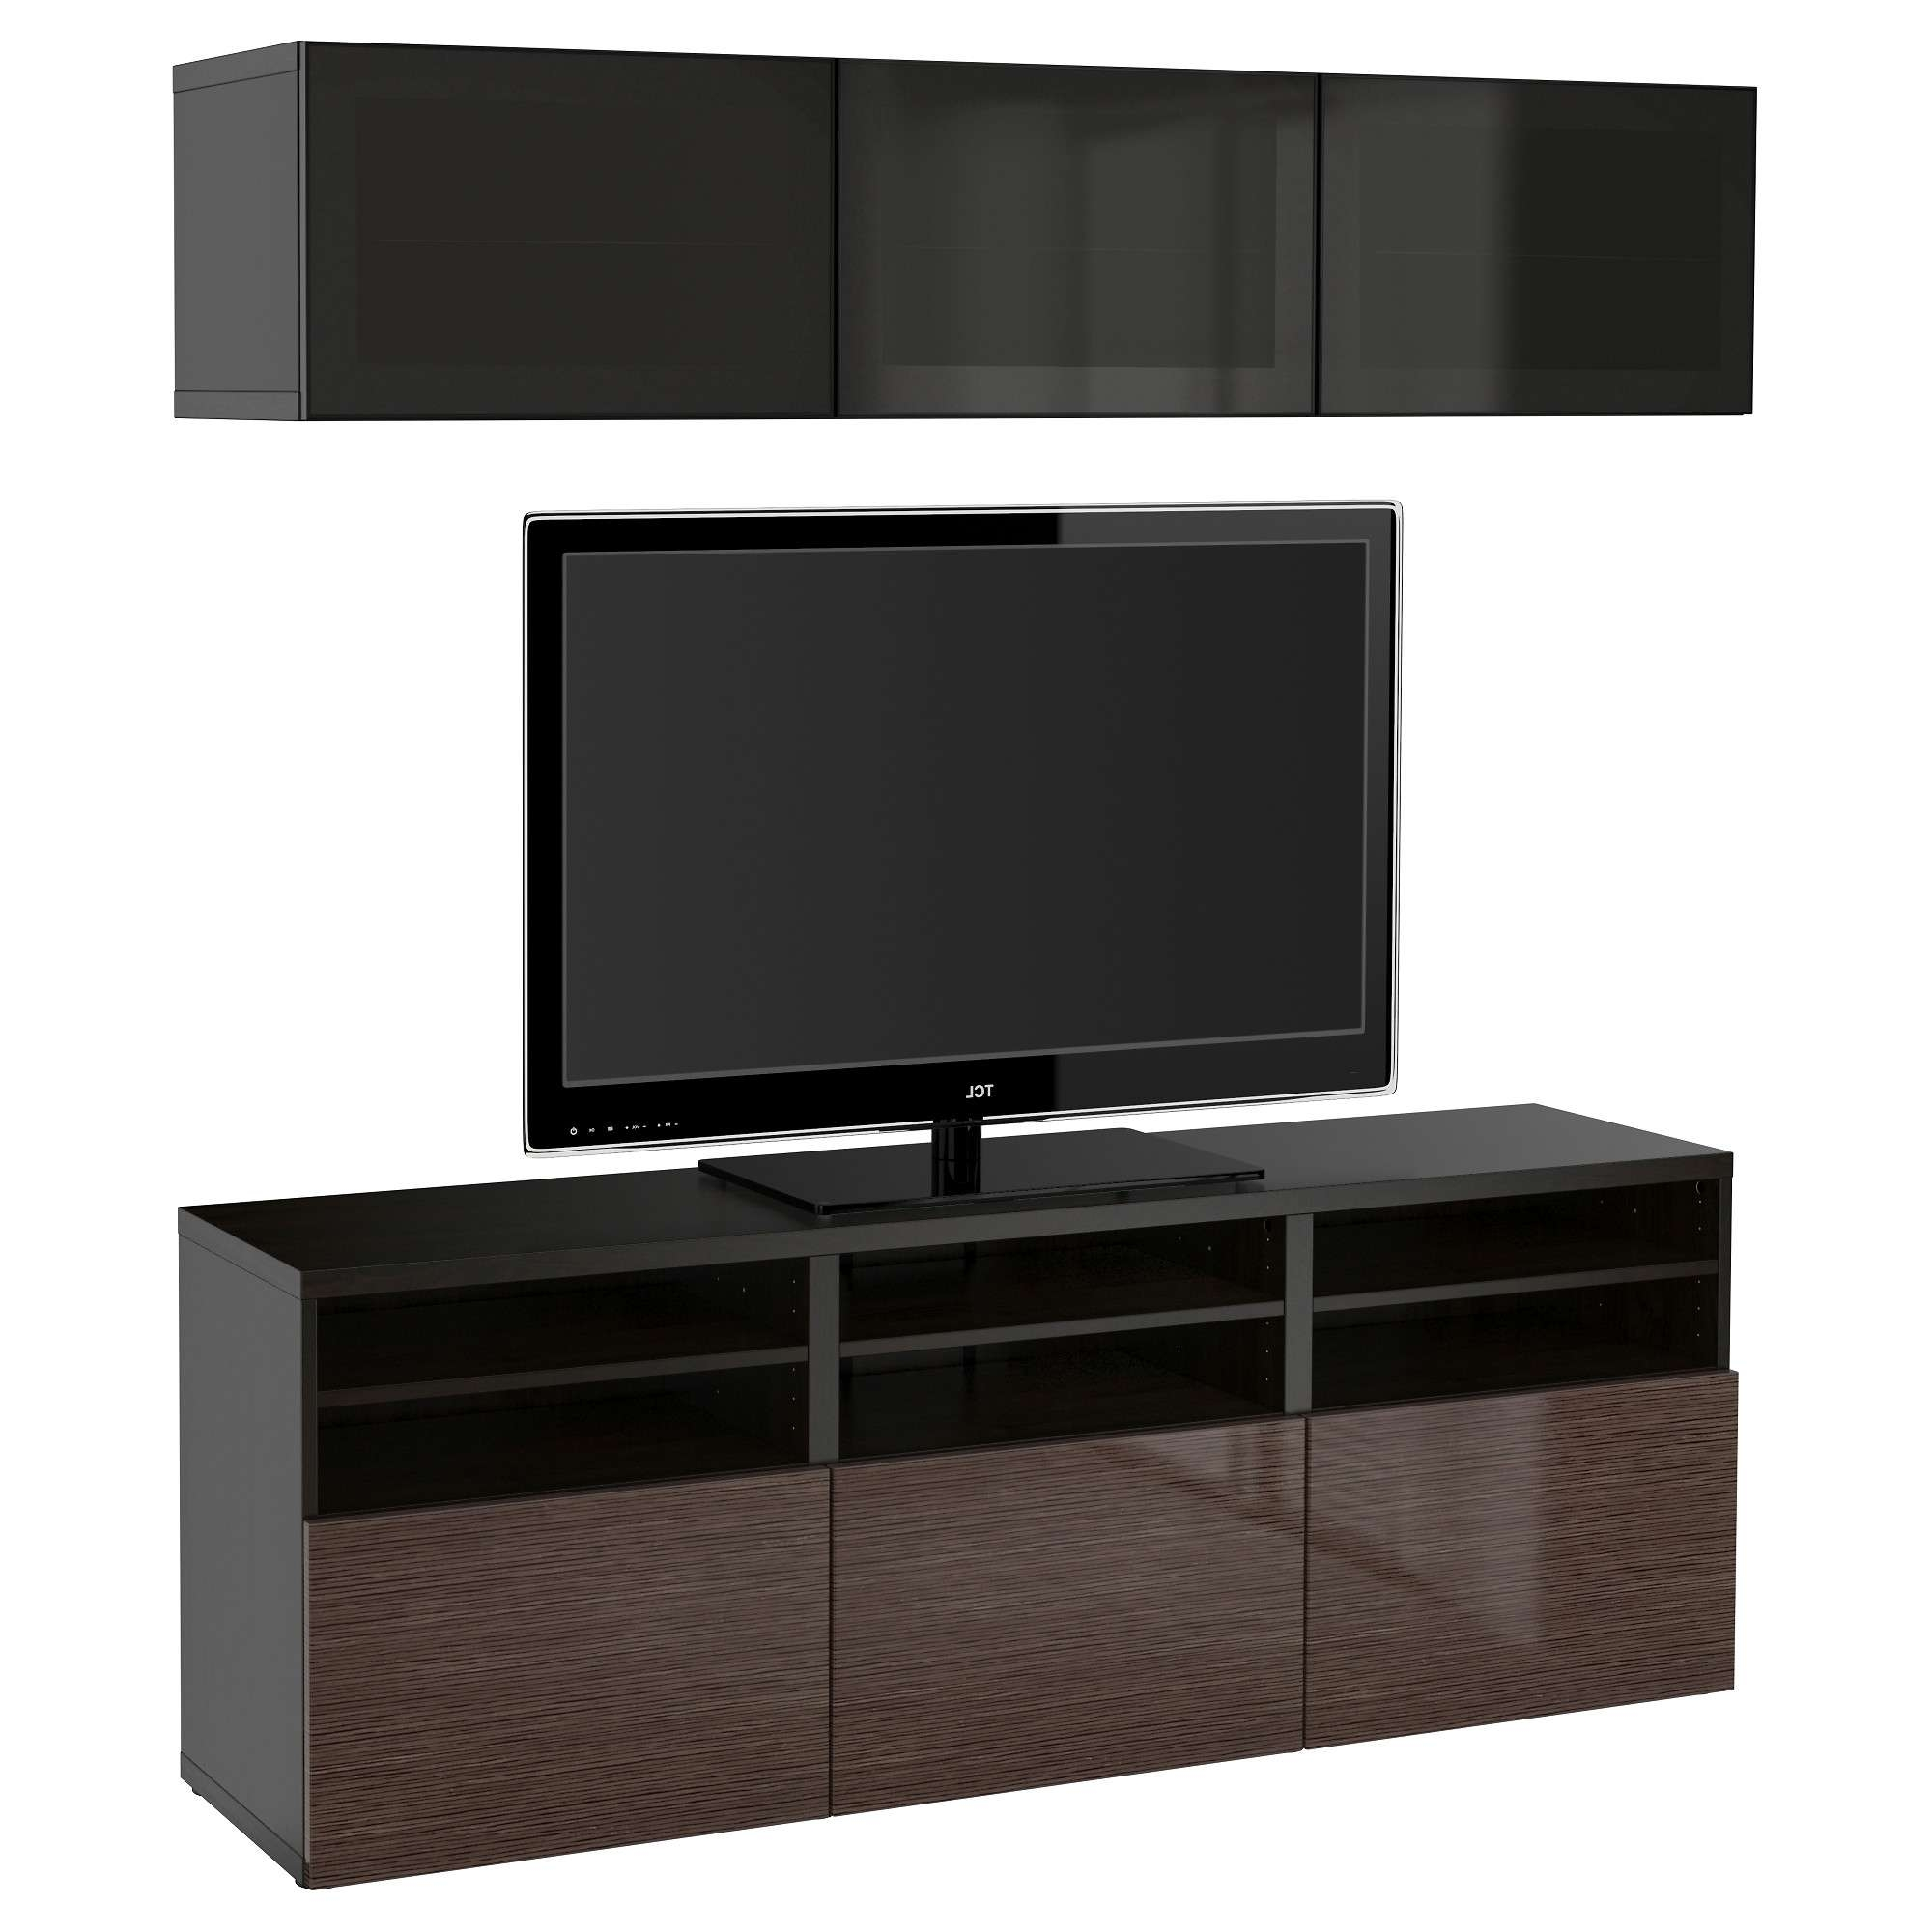 Bestå Tv Storage Combination/glass Doors Black Brown/selsviken Throughout Black Tv Stands With Glass Doors (View 7 of 15)